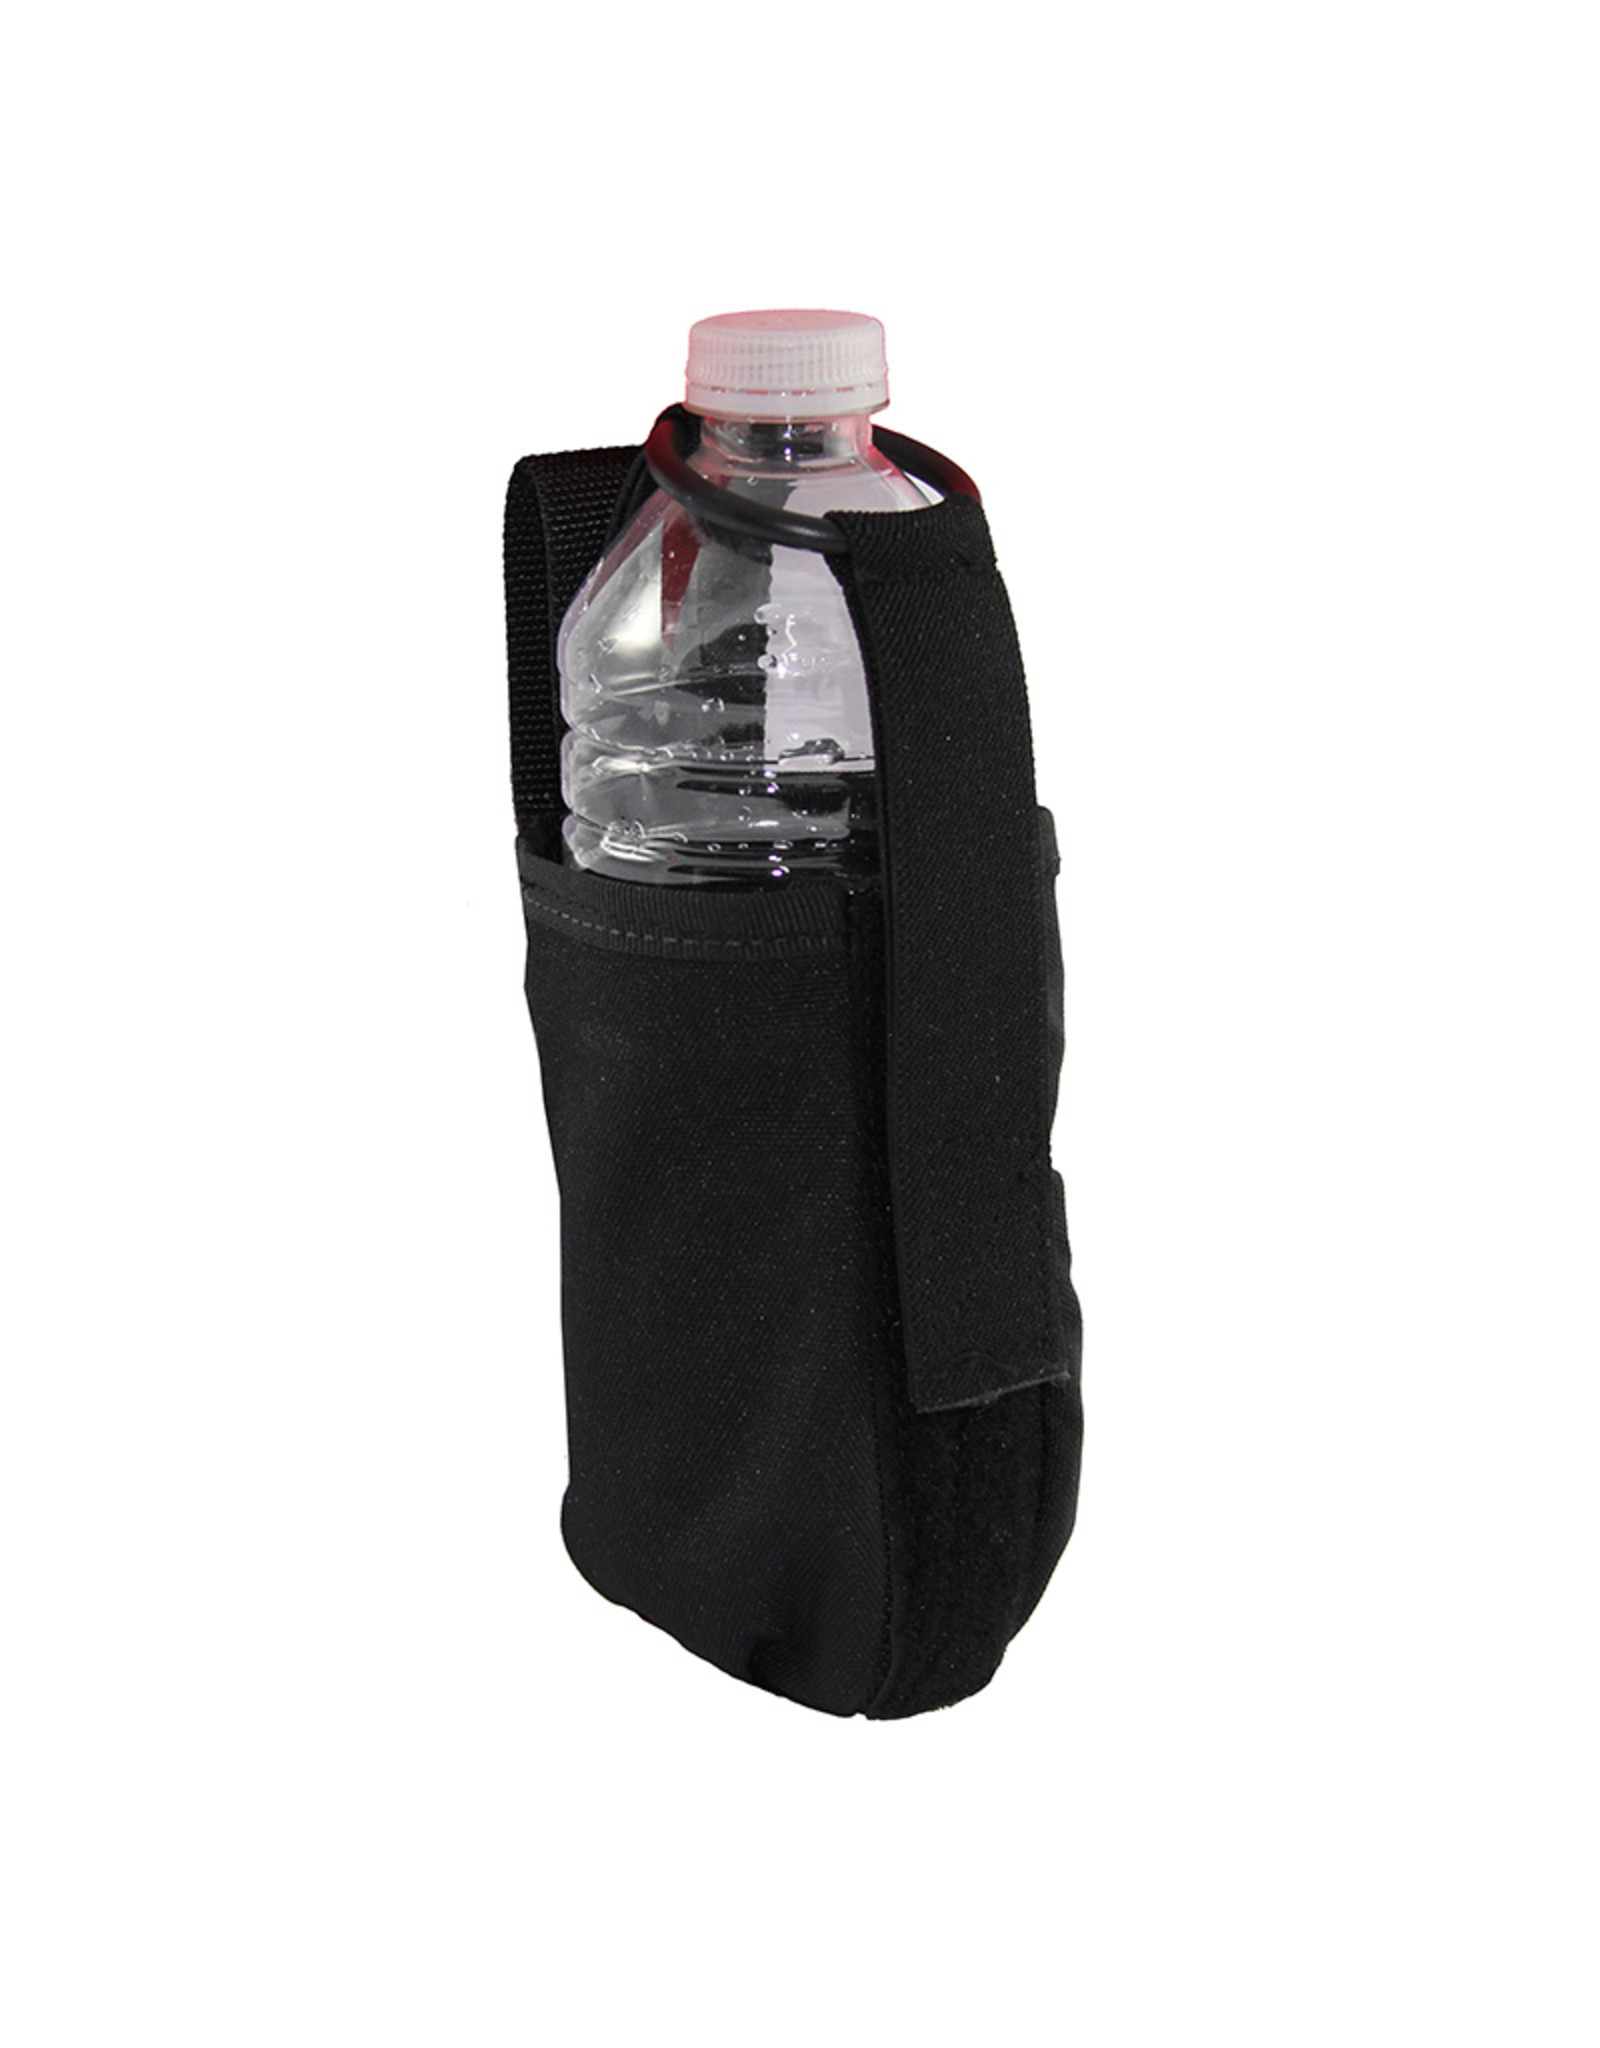 HI-TEC INTERVENTION H20 Bottle Holder